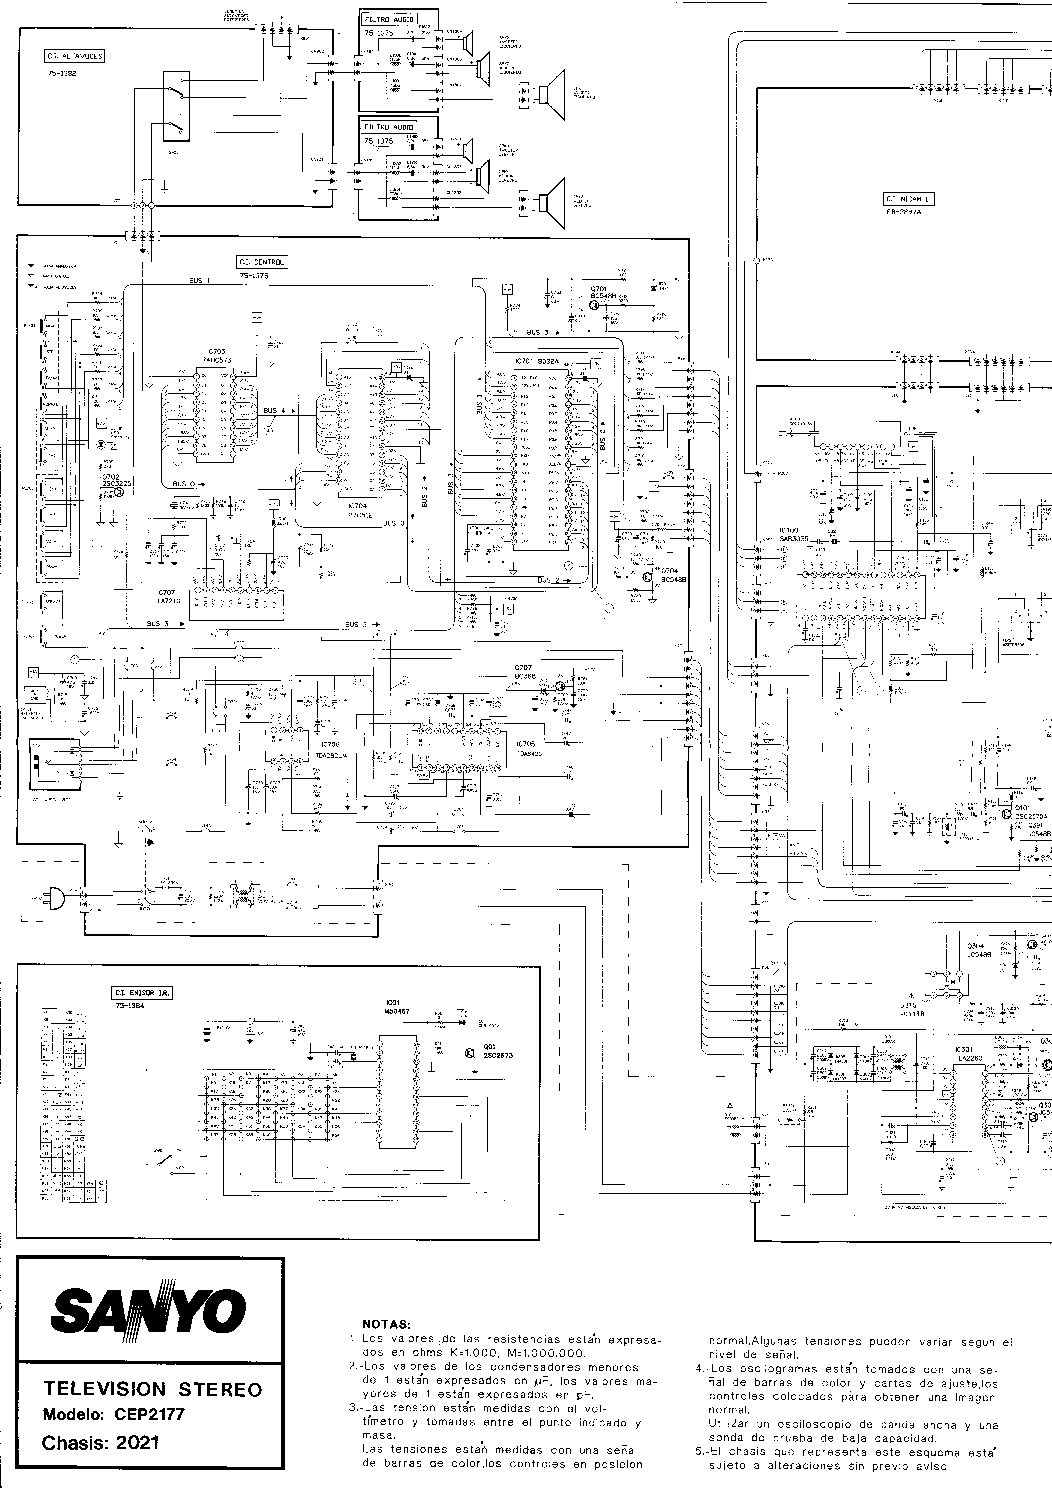 SANYO CEP2177 Service Manual download, schematics, eeprom